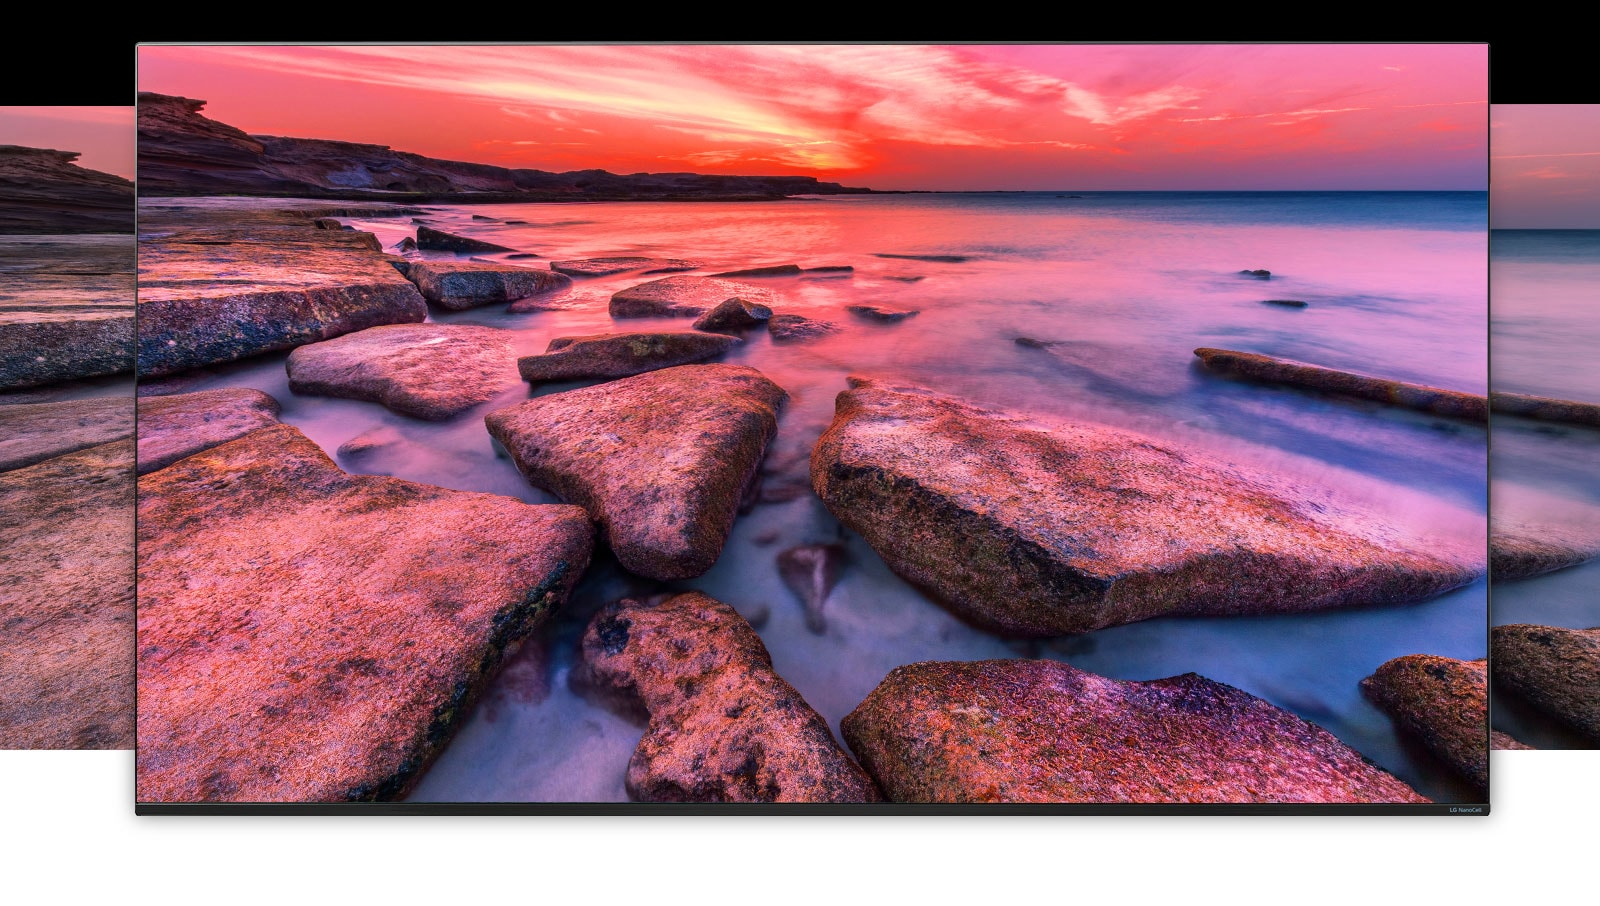 TV screen showing the wide view of nature